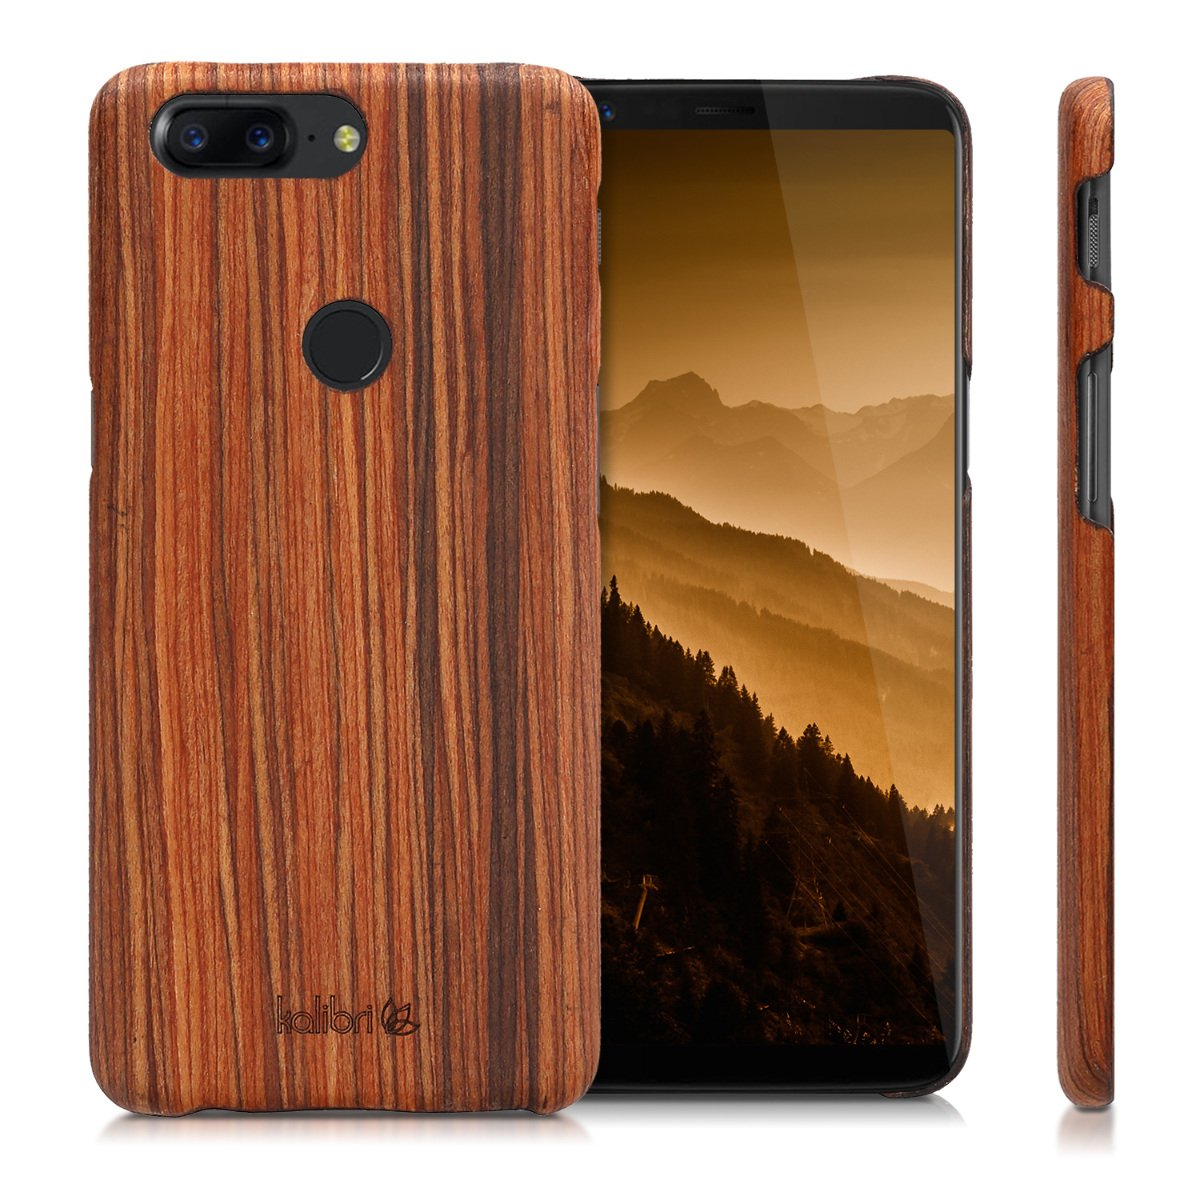 separation shoes 2e3bb ba420 kalibri OnePlus 5T Wood Case - Ultra Slim Natural Hard Wooden Protective  Cover for OnePlus 5T